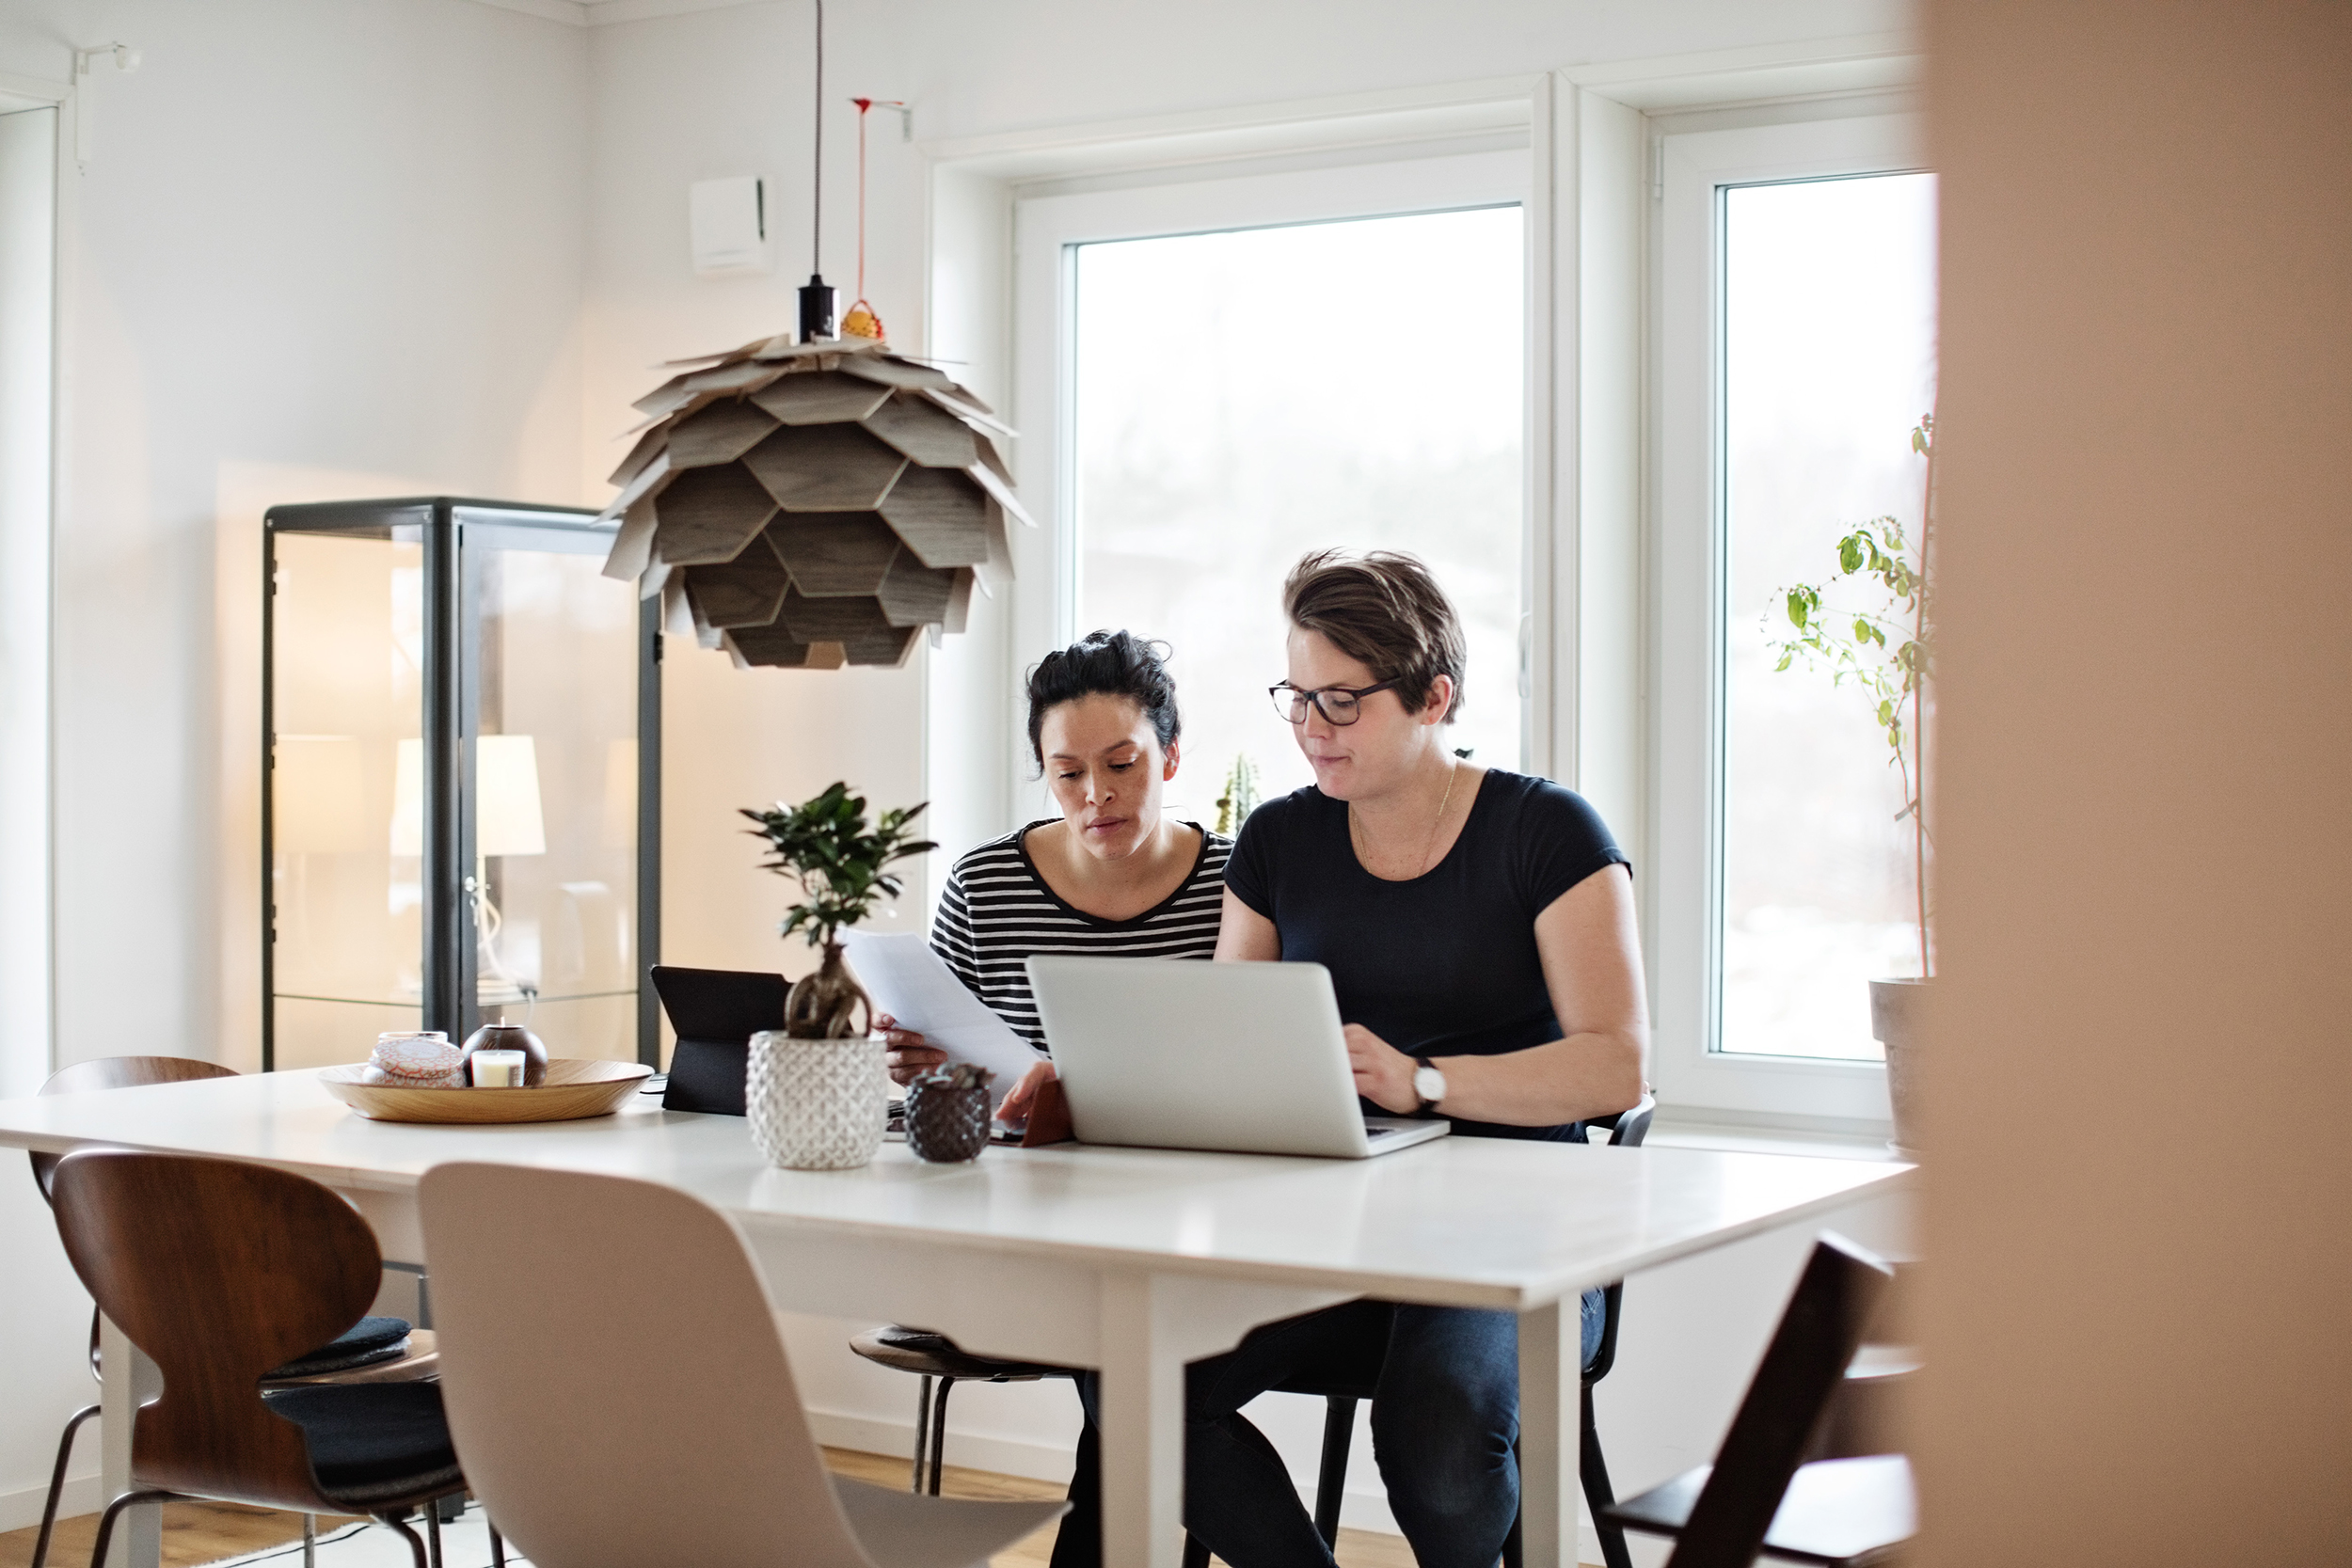 10 Things Financial Experts Want You Know About Getting A Roommate